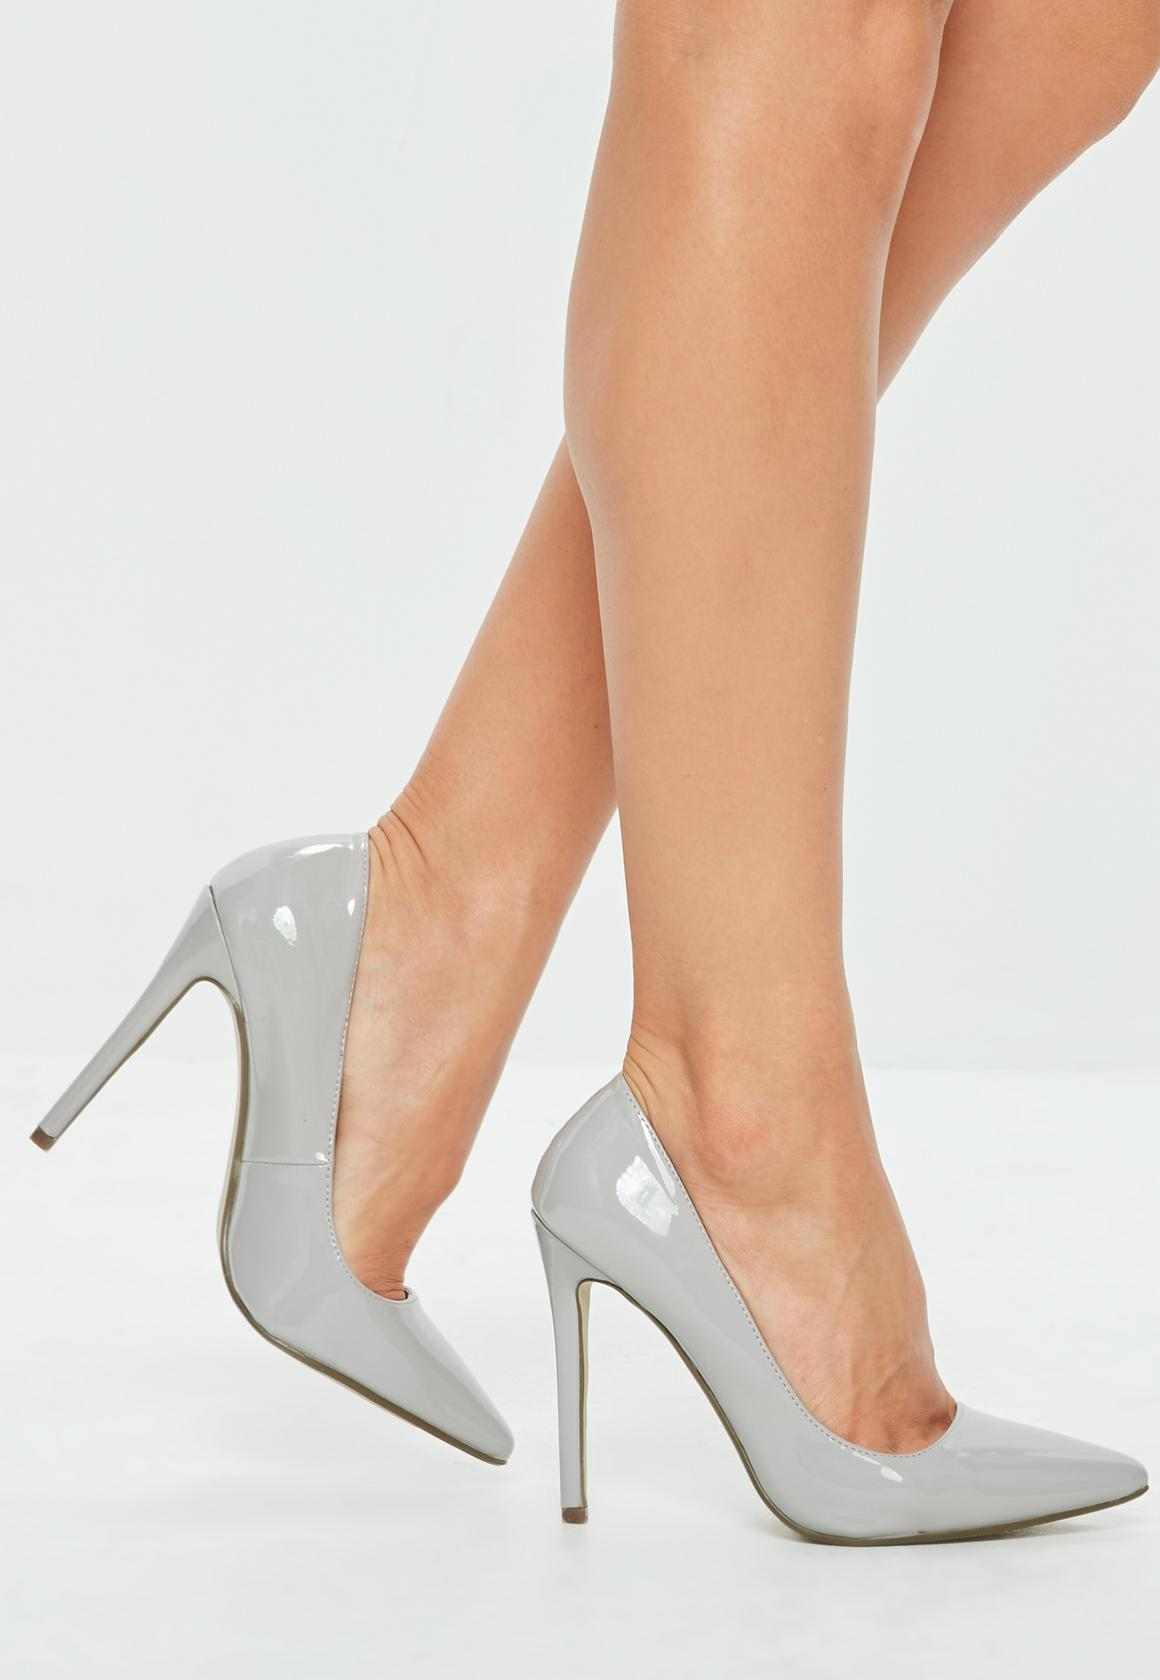 grey-patent-heeled-court-shoes